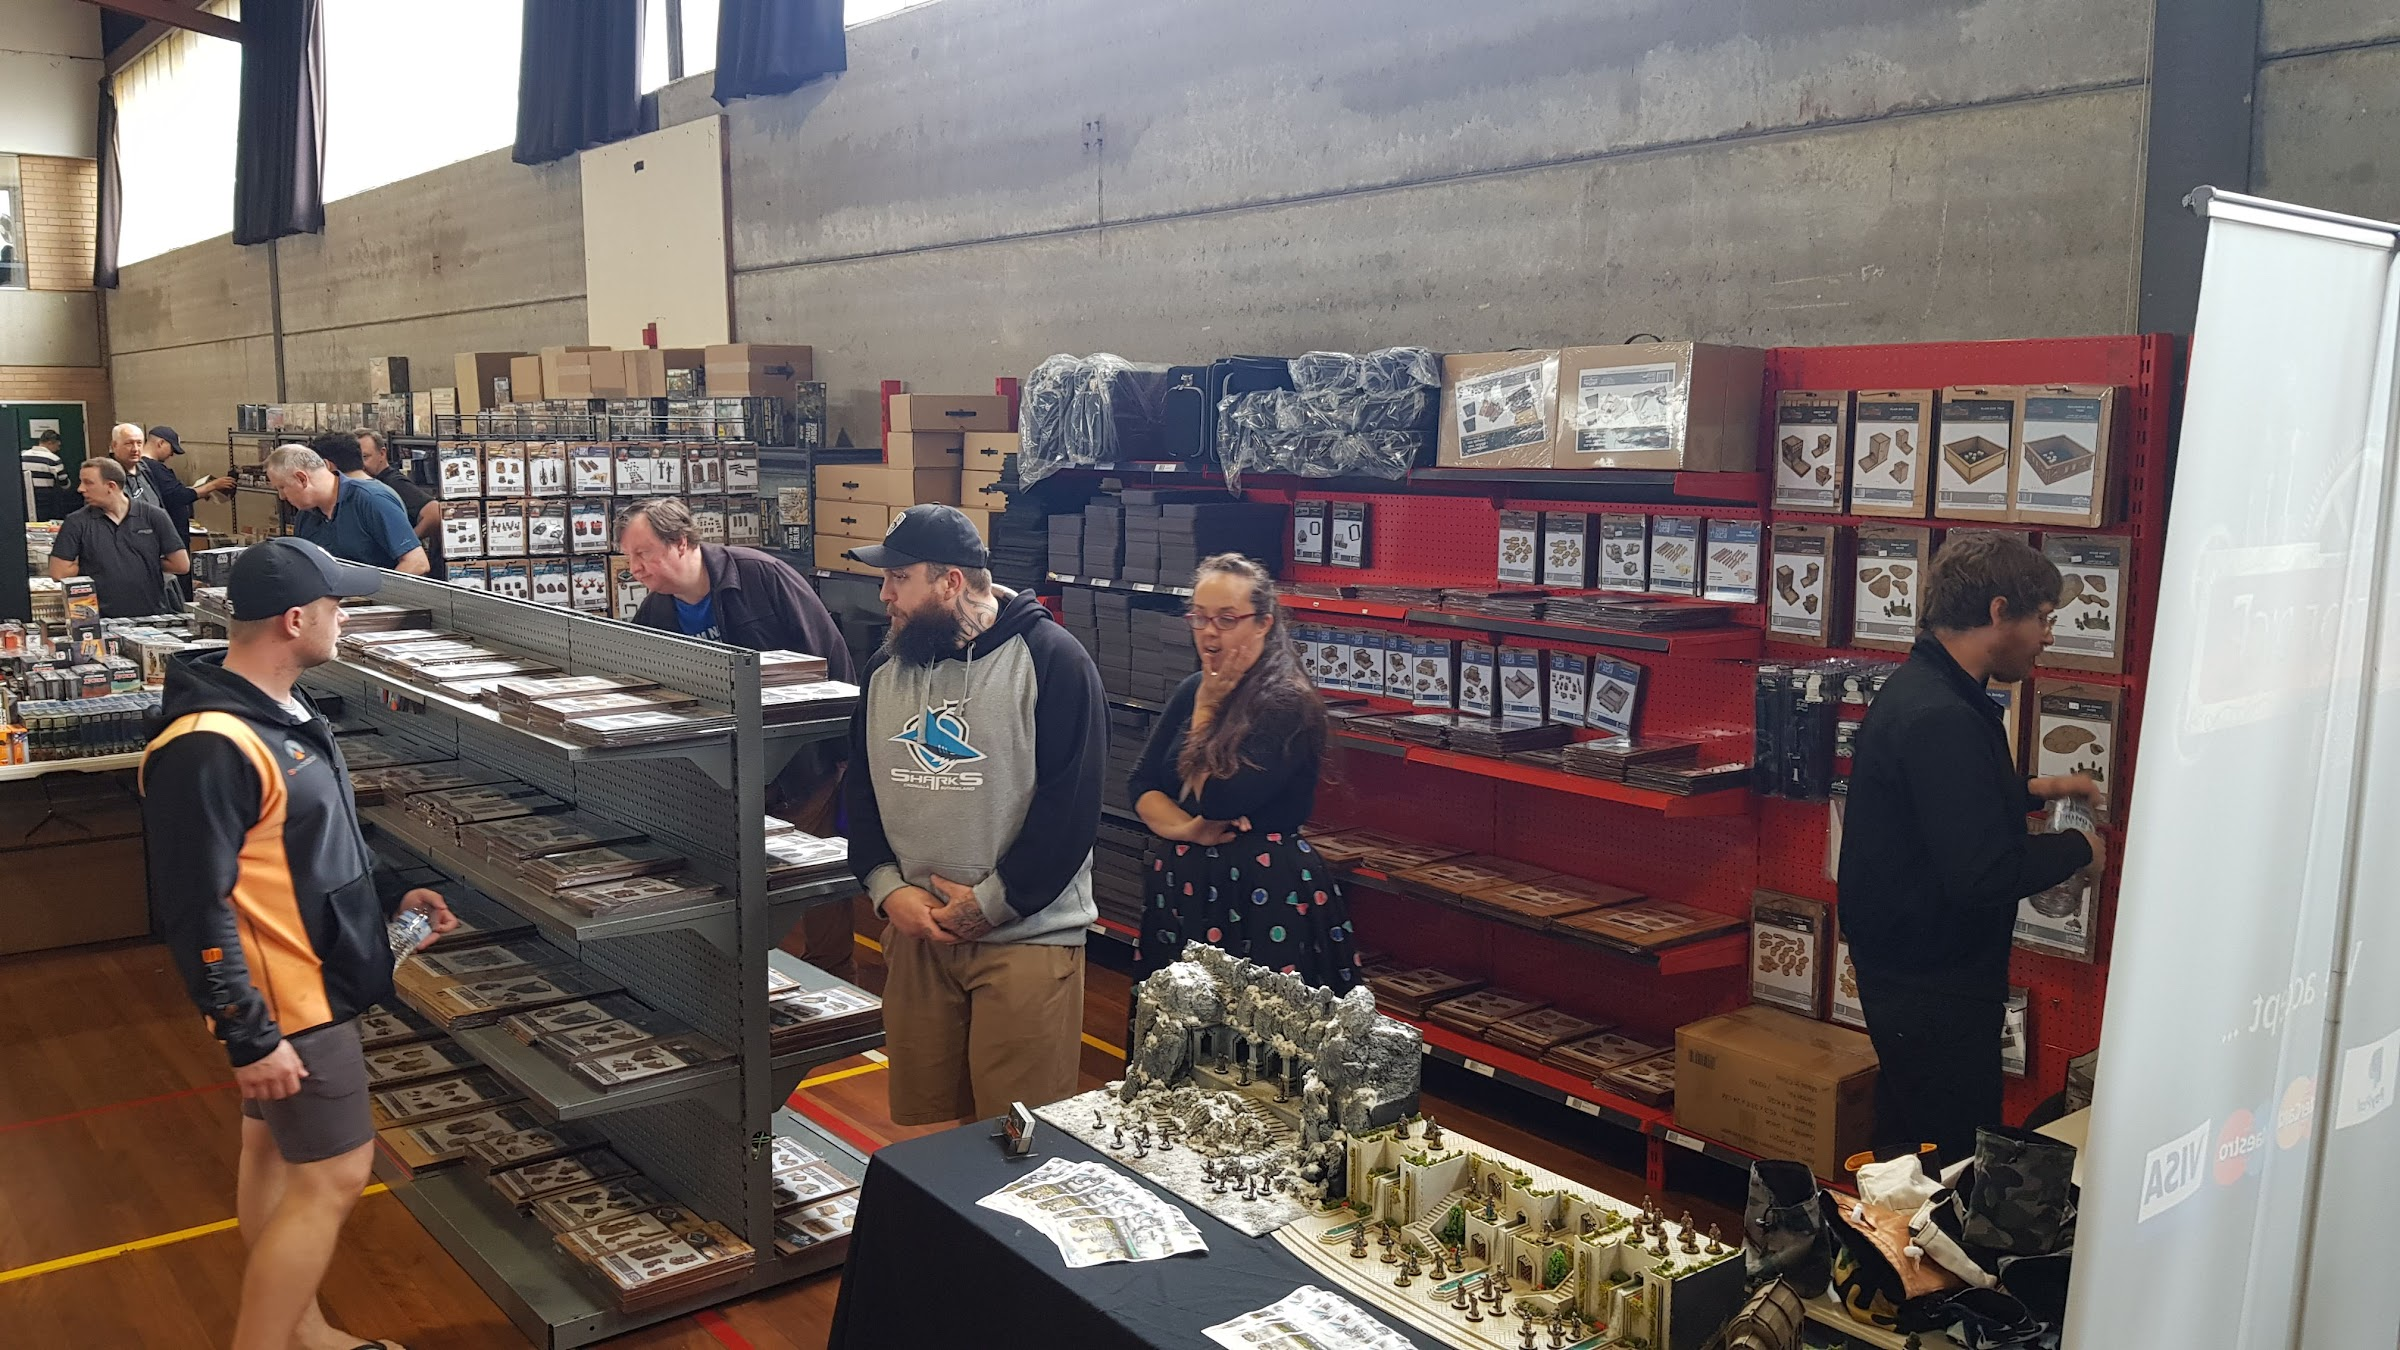 Customers browsing the Knights of Dice stand